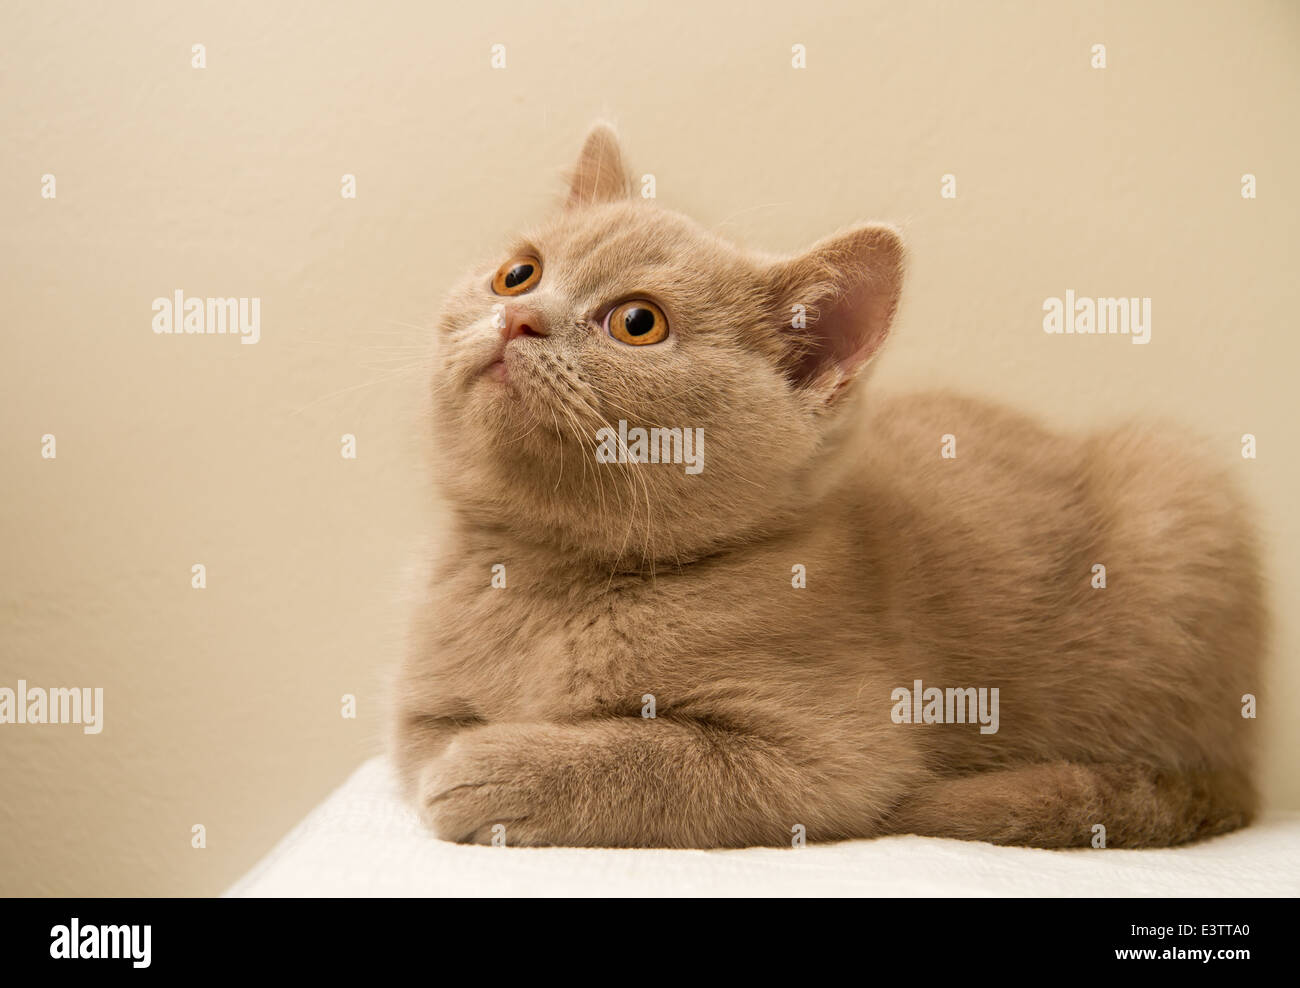 A Fawn British Shorthair Kitten Stock Royalty Free Image